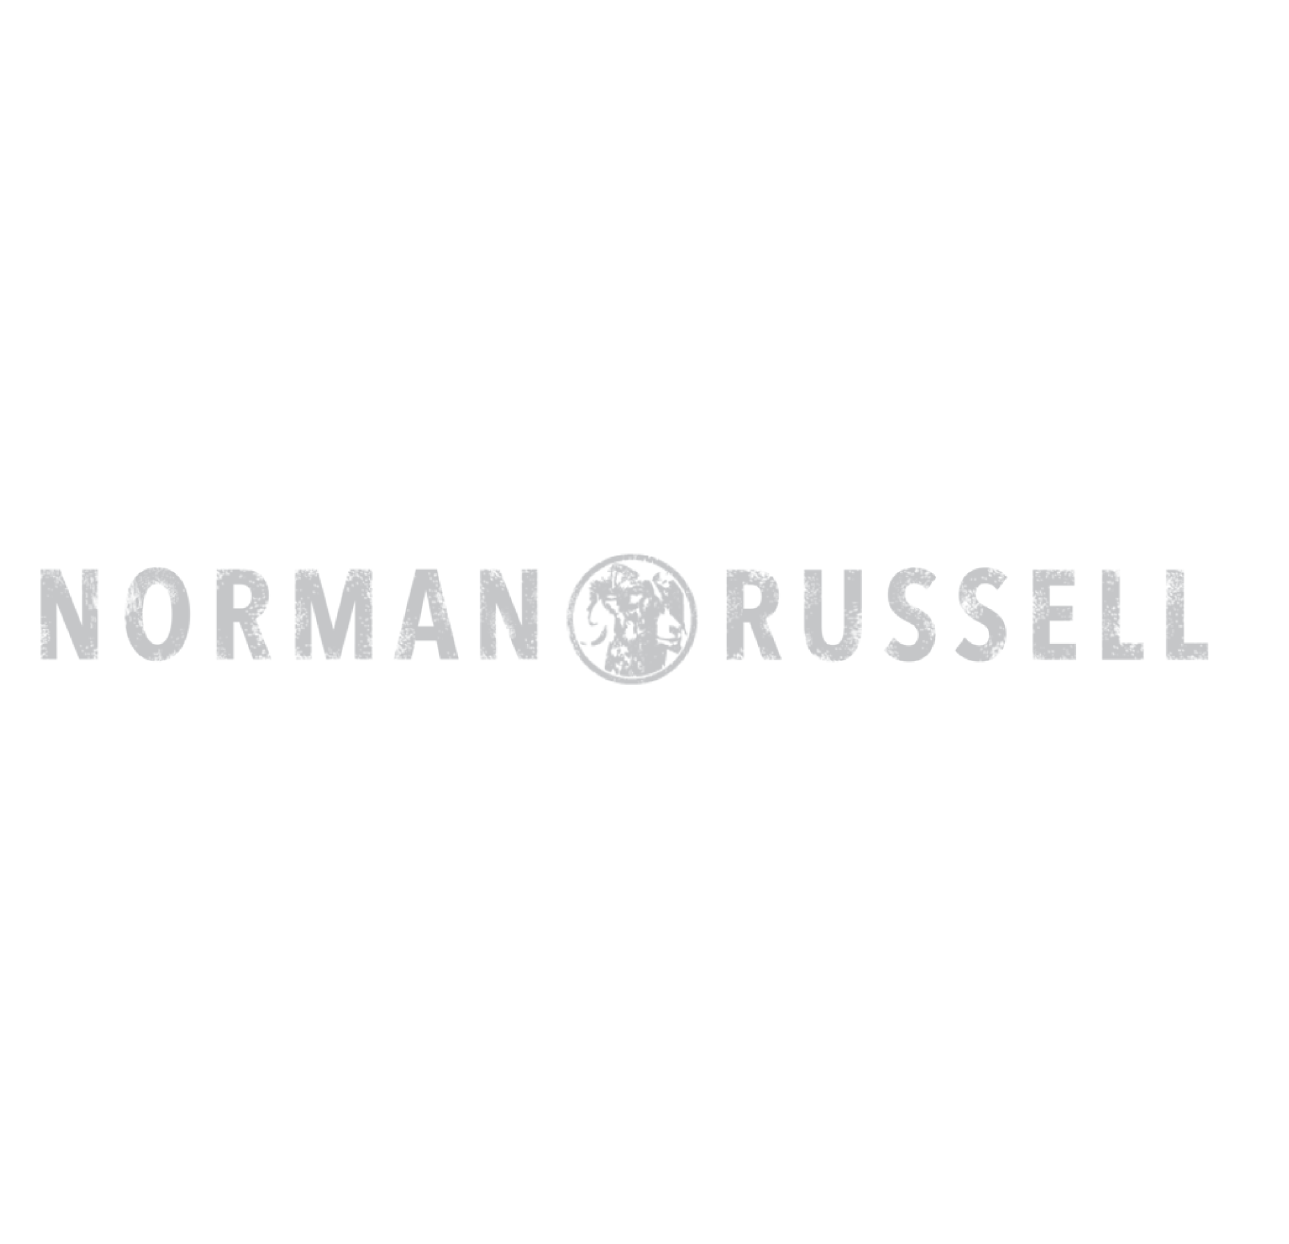 Norman_Russel_White_Logo.png